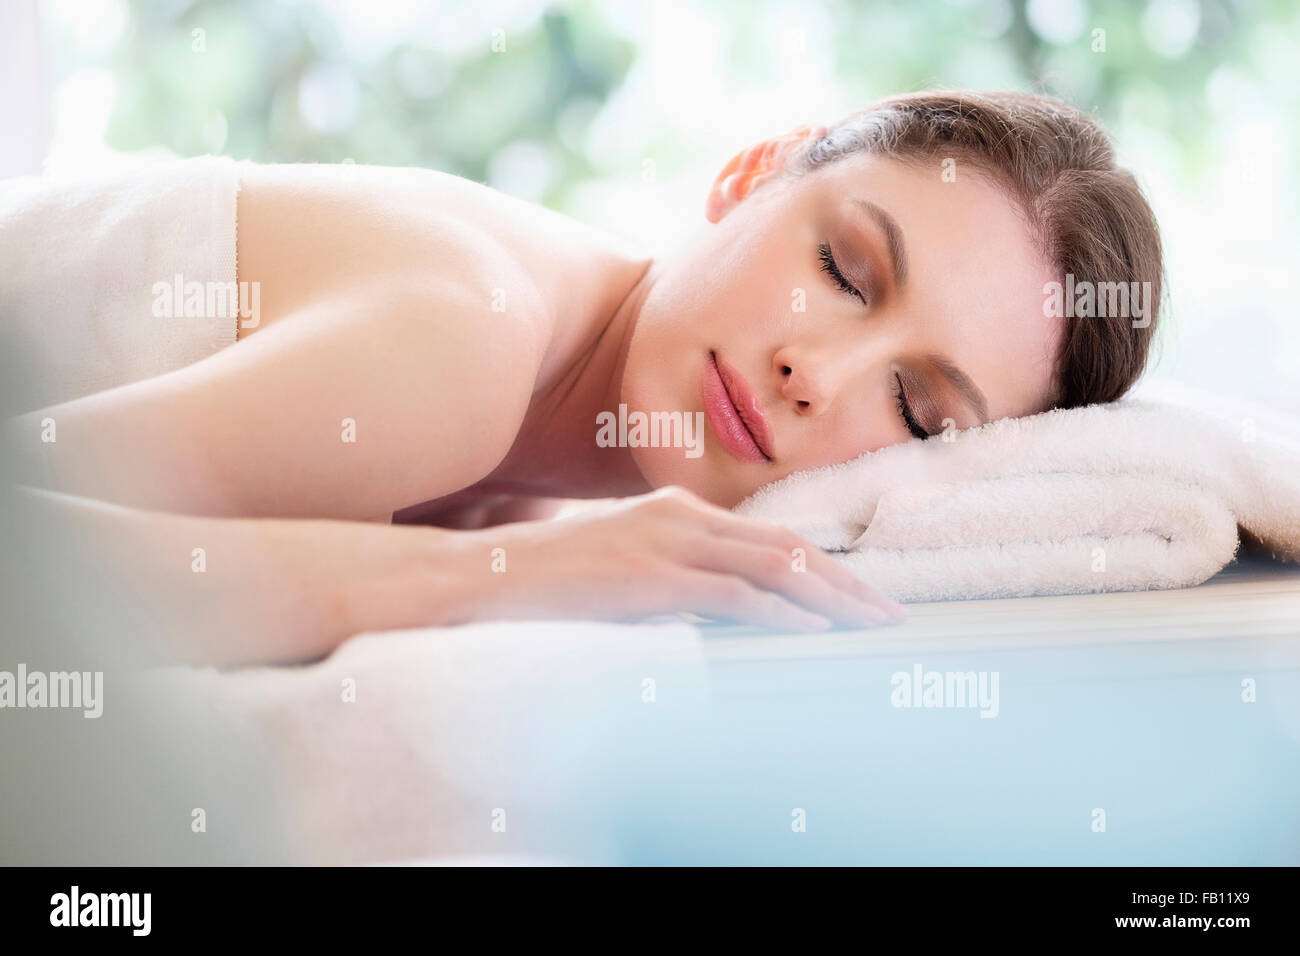 Portrait of beautiful woman in spa - Stock Image